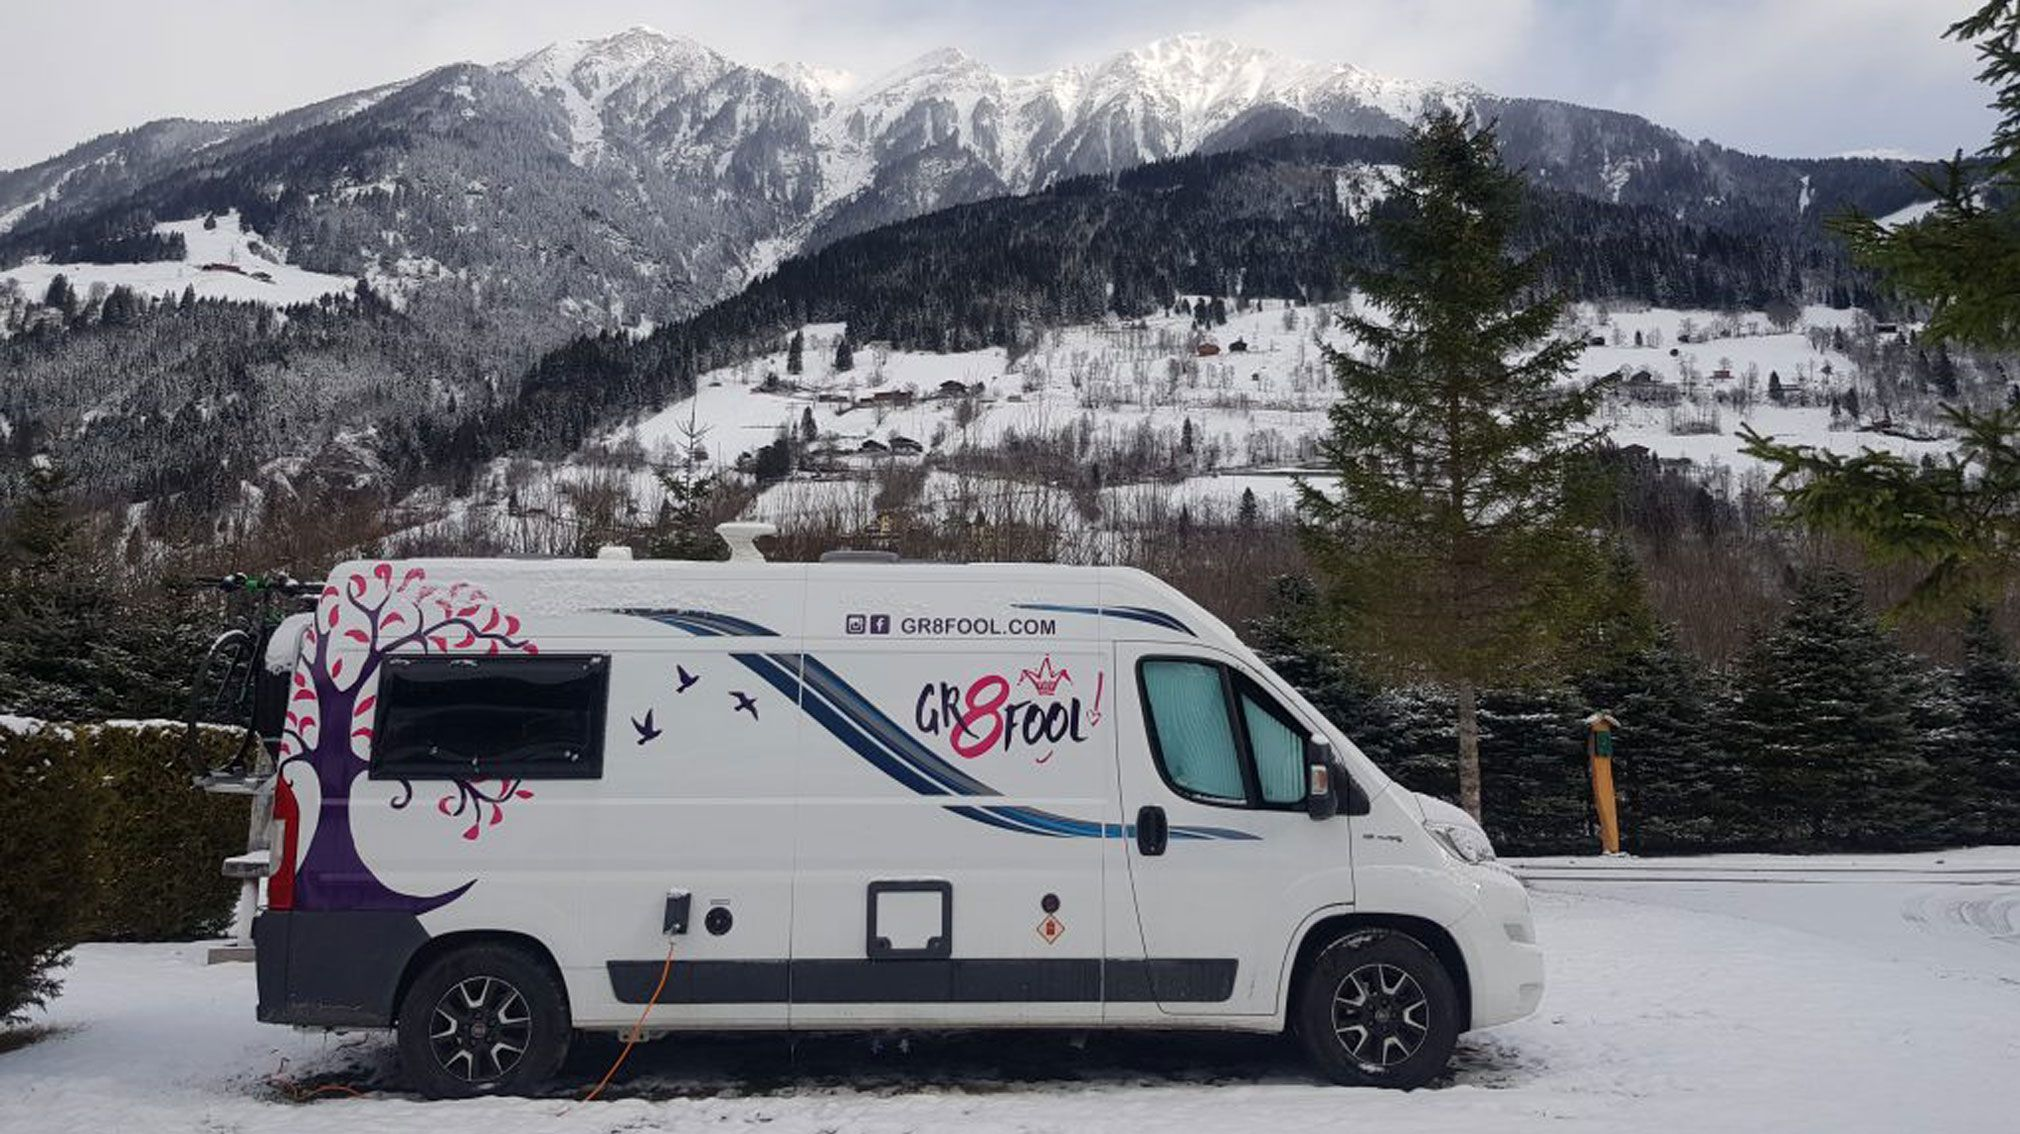 Compass Avantgarde campervan with a mountain range backdrop